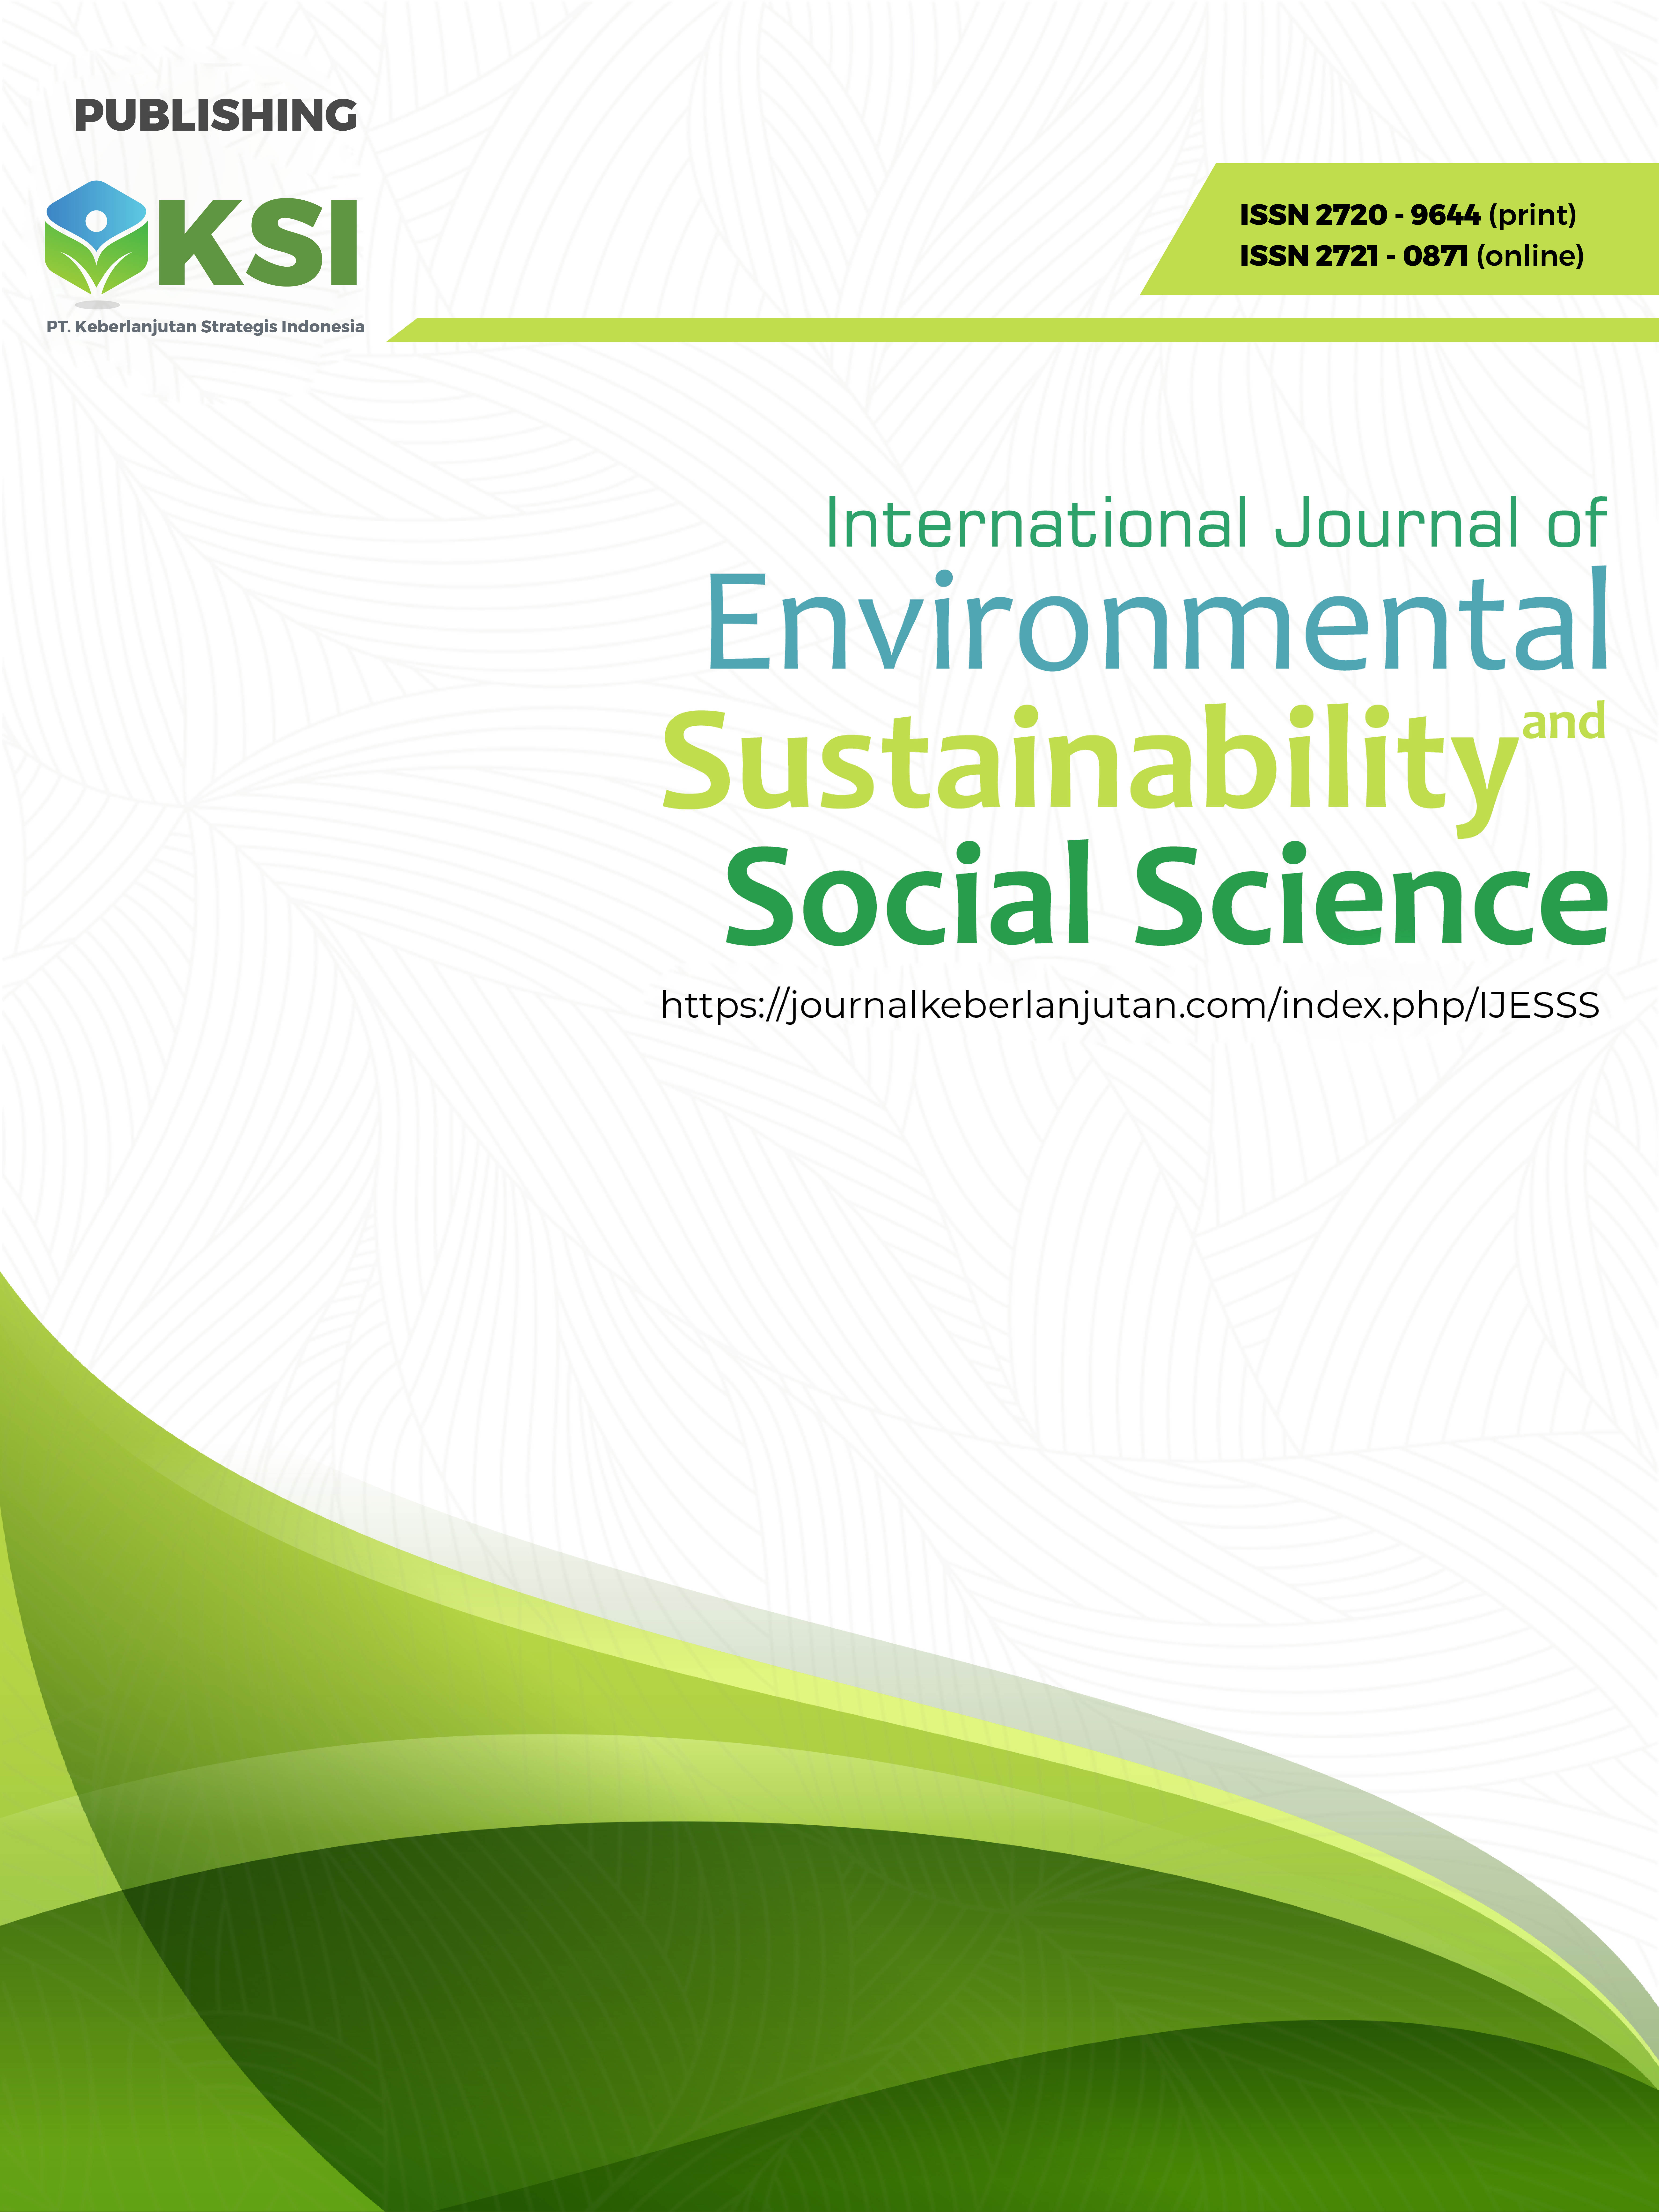 View Vol. 2 No. 2 (2021): International Journal of Environmental, Sustainability, and Social Science